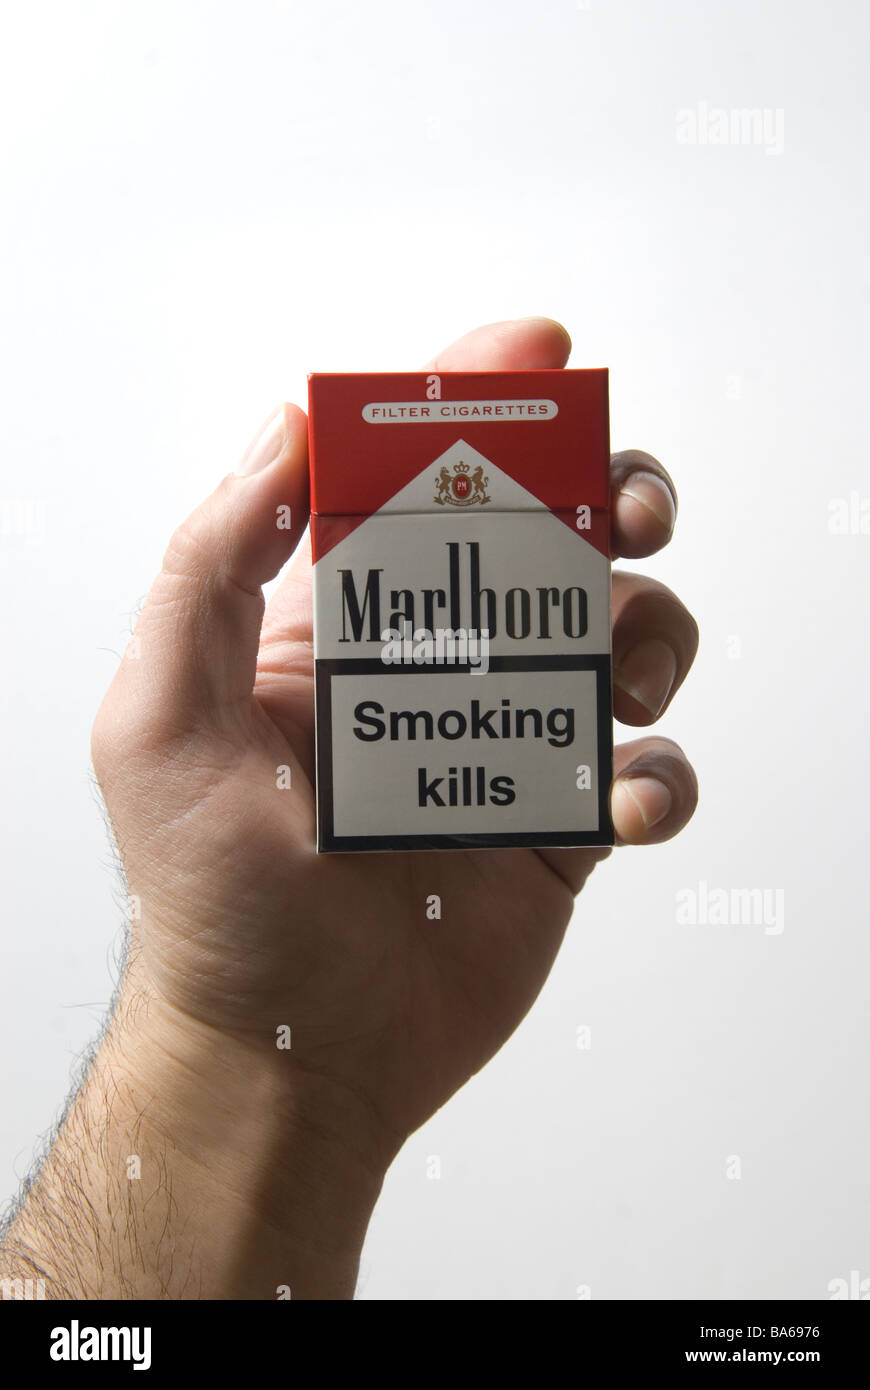 Man's hand holding a red Marlboro cigarettes packet with a smoking kills warning - Stock Image